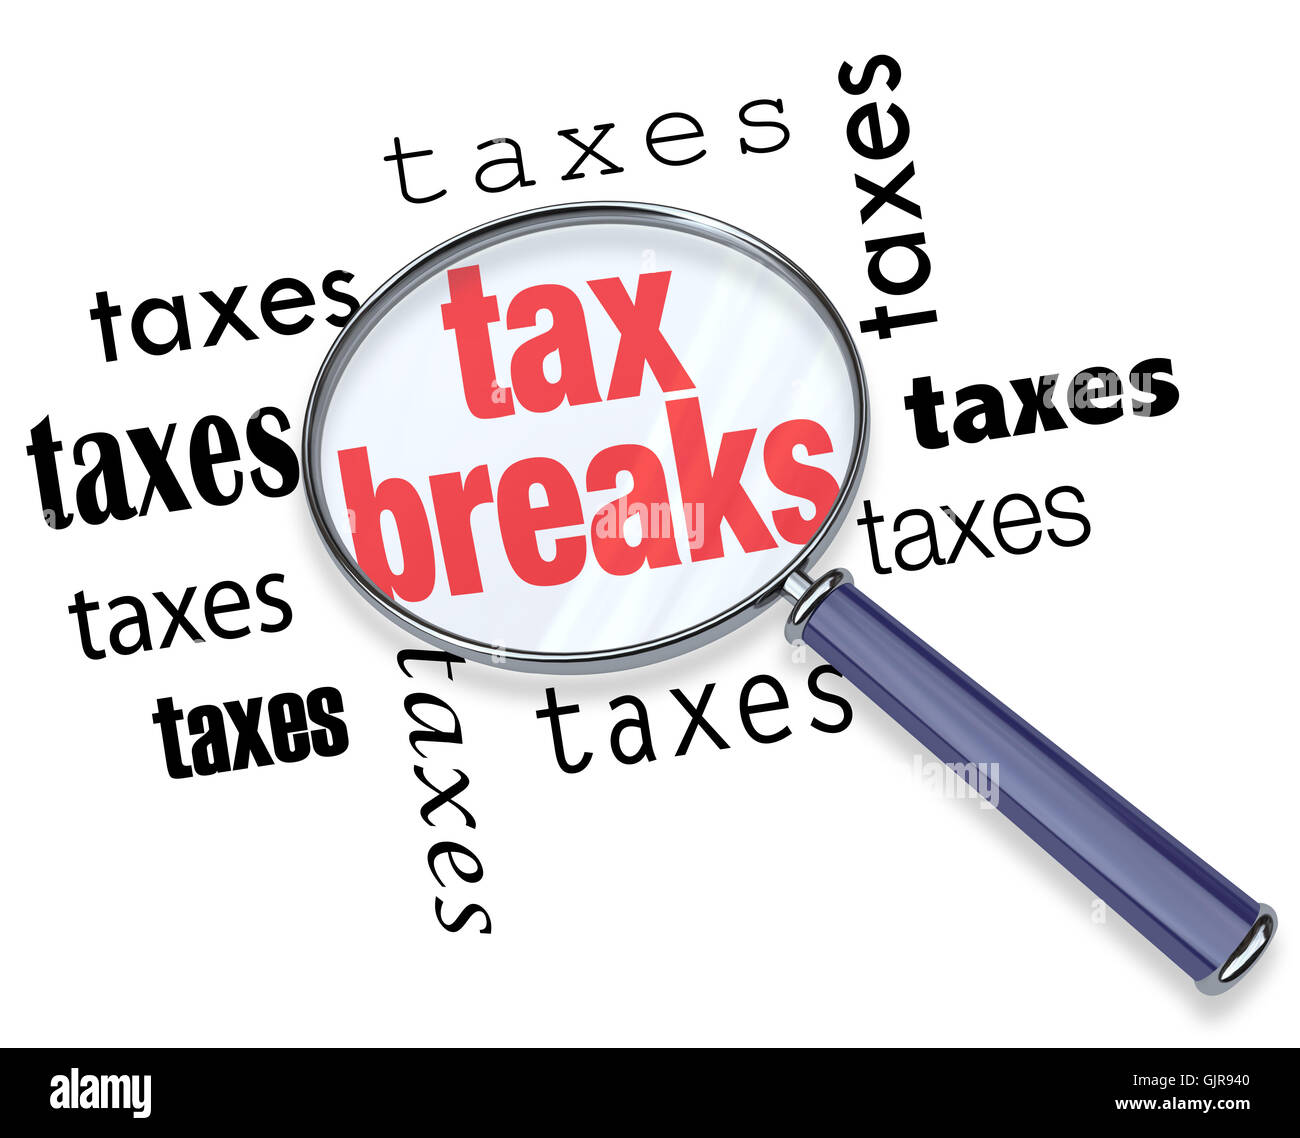 How to Find Tax Breaks - Magnifying Glass - Stock Image